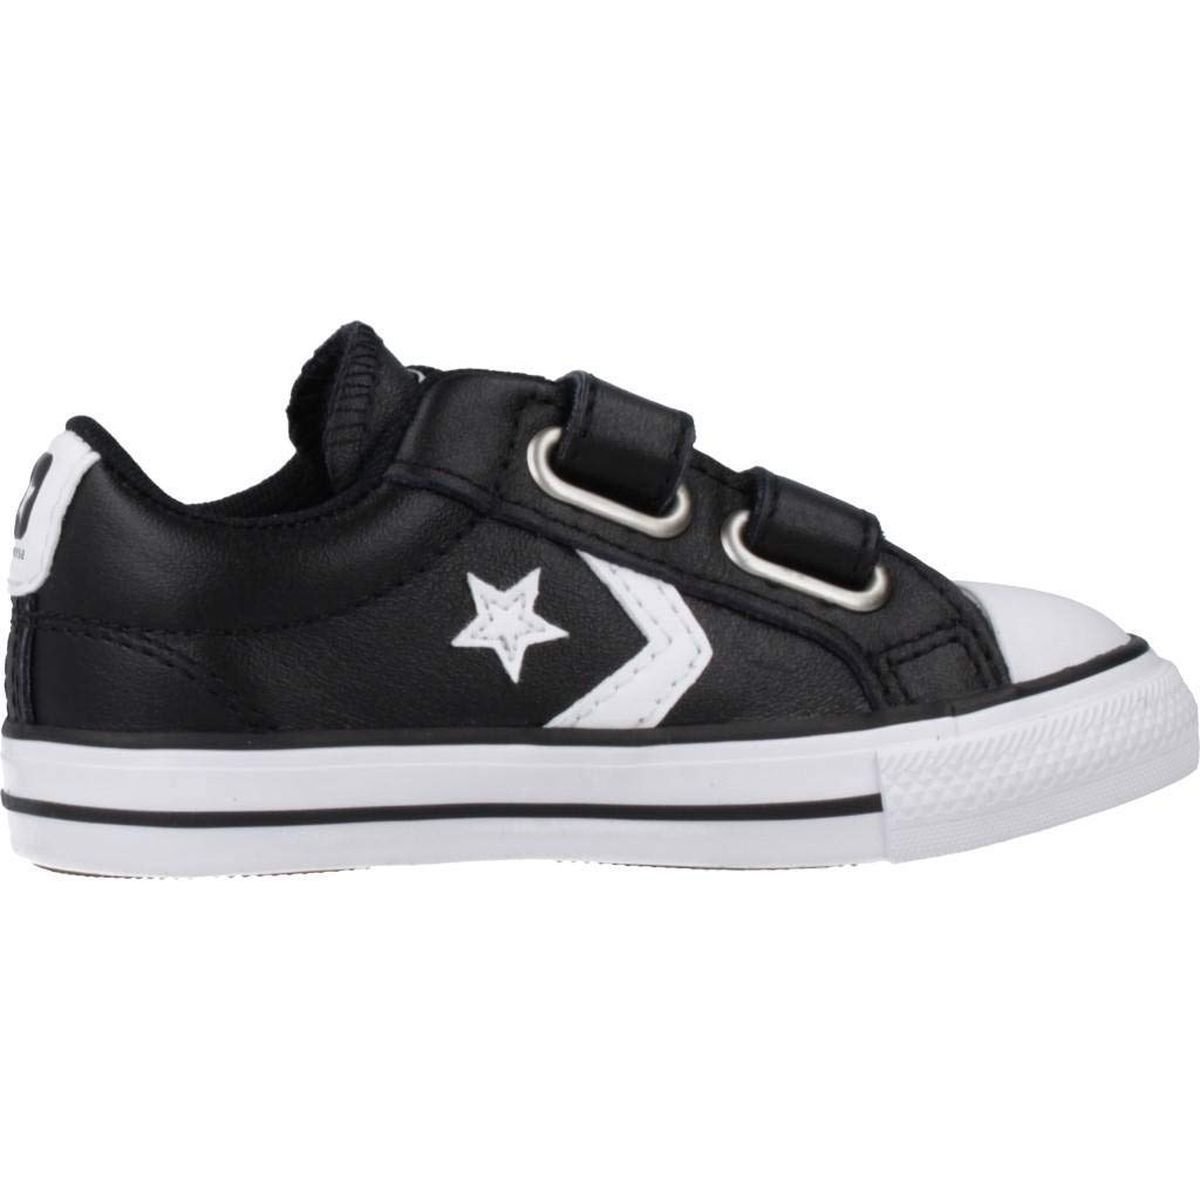 TEX HIGH STAR PLAYER EV 2V OX:NOIR/CUIR/TEXTILE/CAOUTCHOUC/Noir